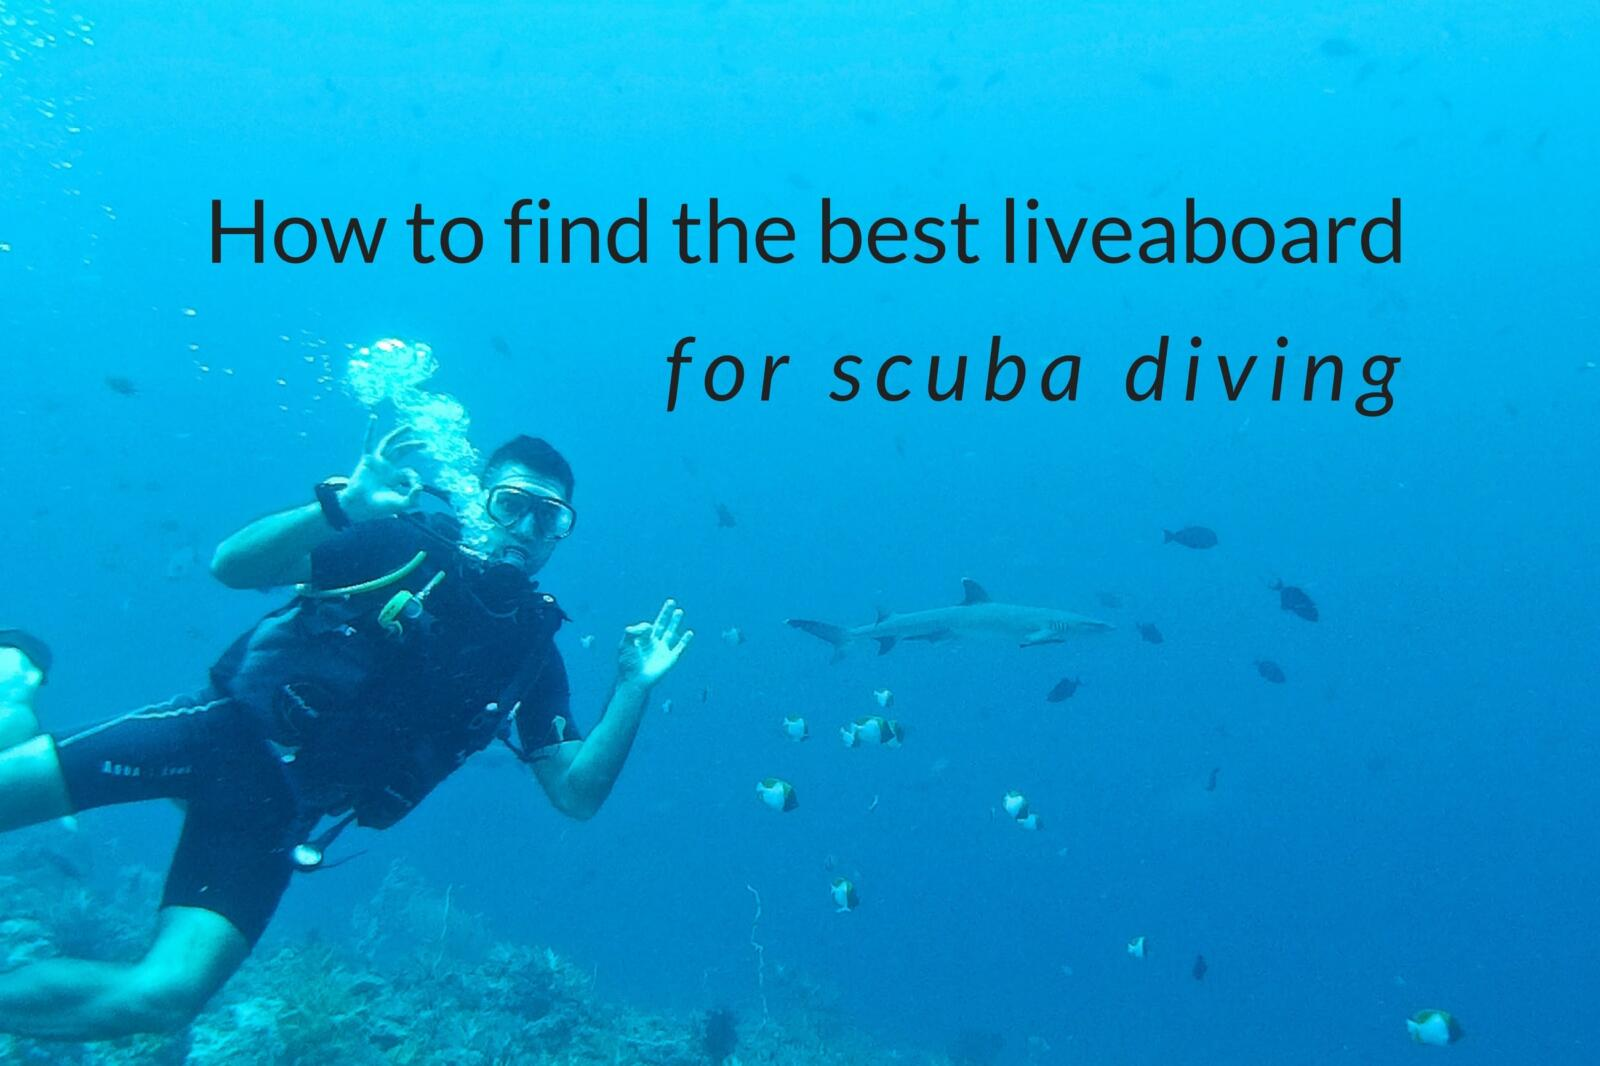 How to find the best liveaboard for scuba diving